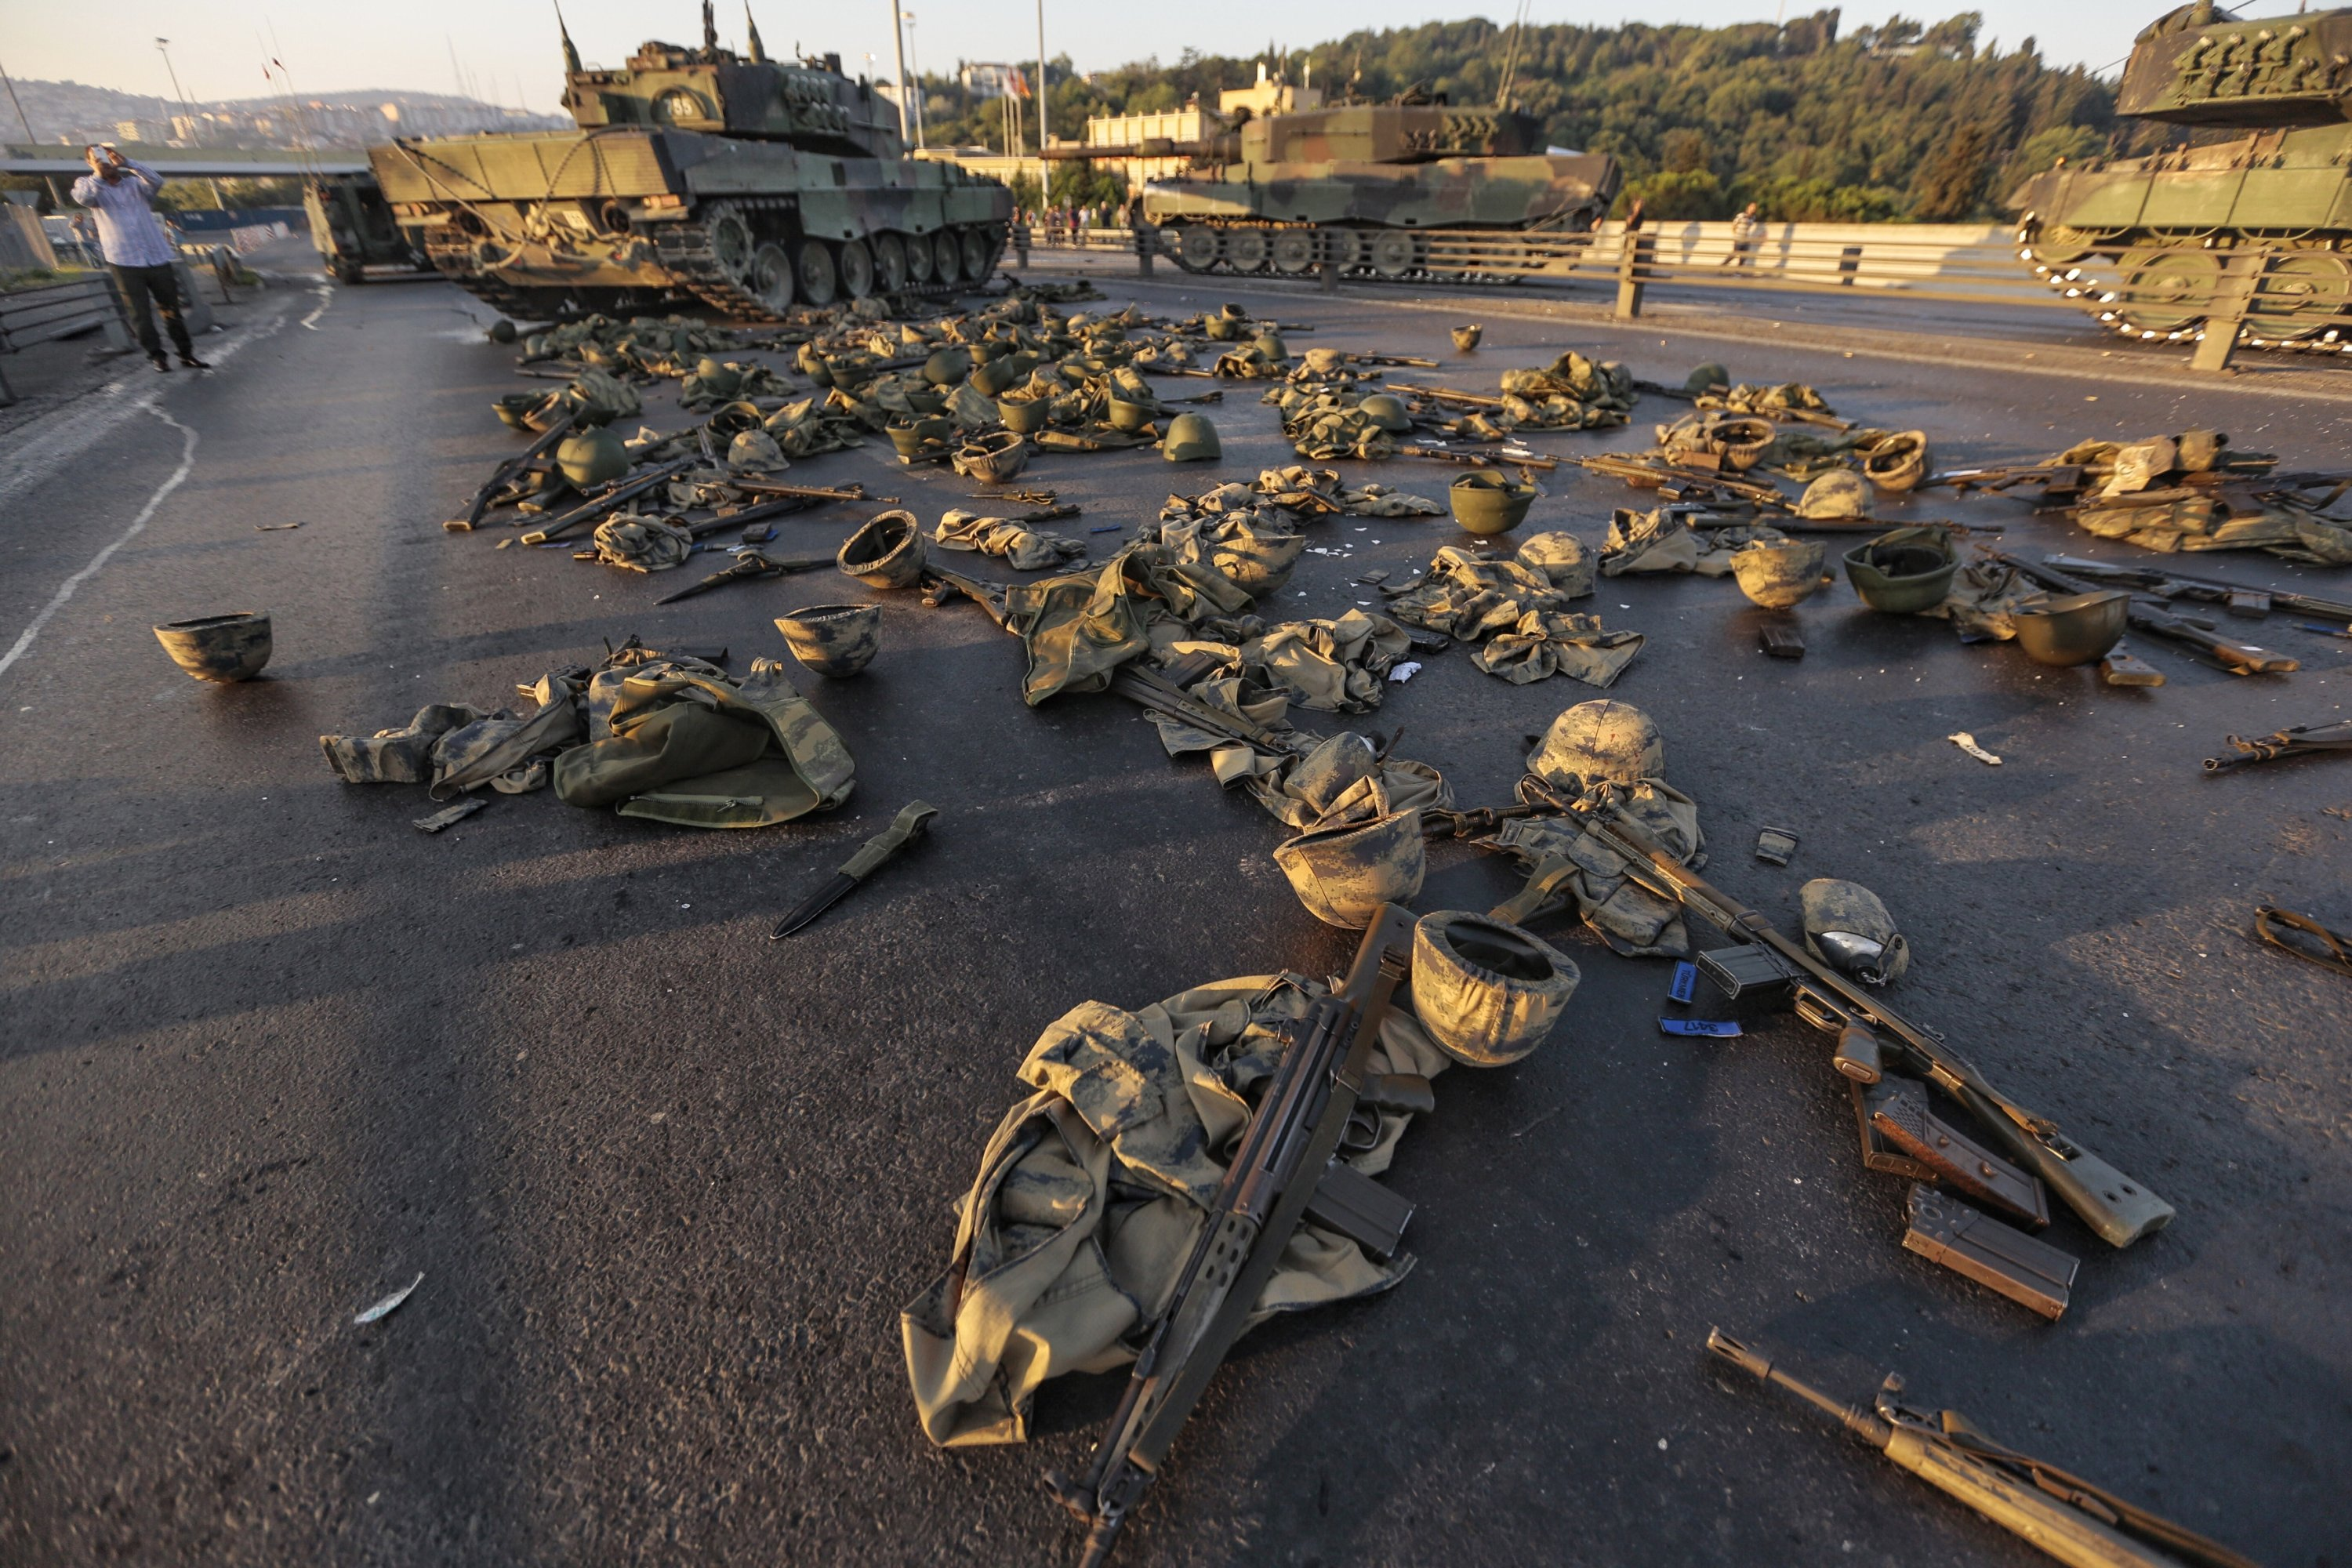 Clothes and weapons belonging to Gülenist Terror Group (FETÖ) soldiers involved in the coup attempt lie abandoned on the ground, on the Bosporus Bridge – now the July 15 Martyrs' Bridge – in Istanbul, Turkey, July 16, 2016. (Photo by Getty Images)